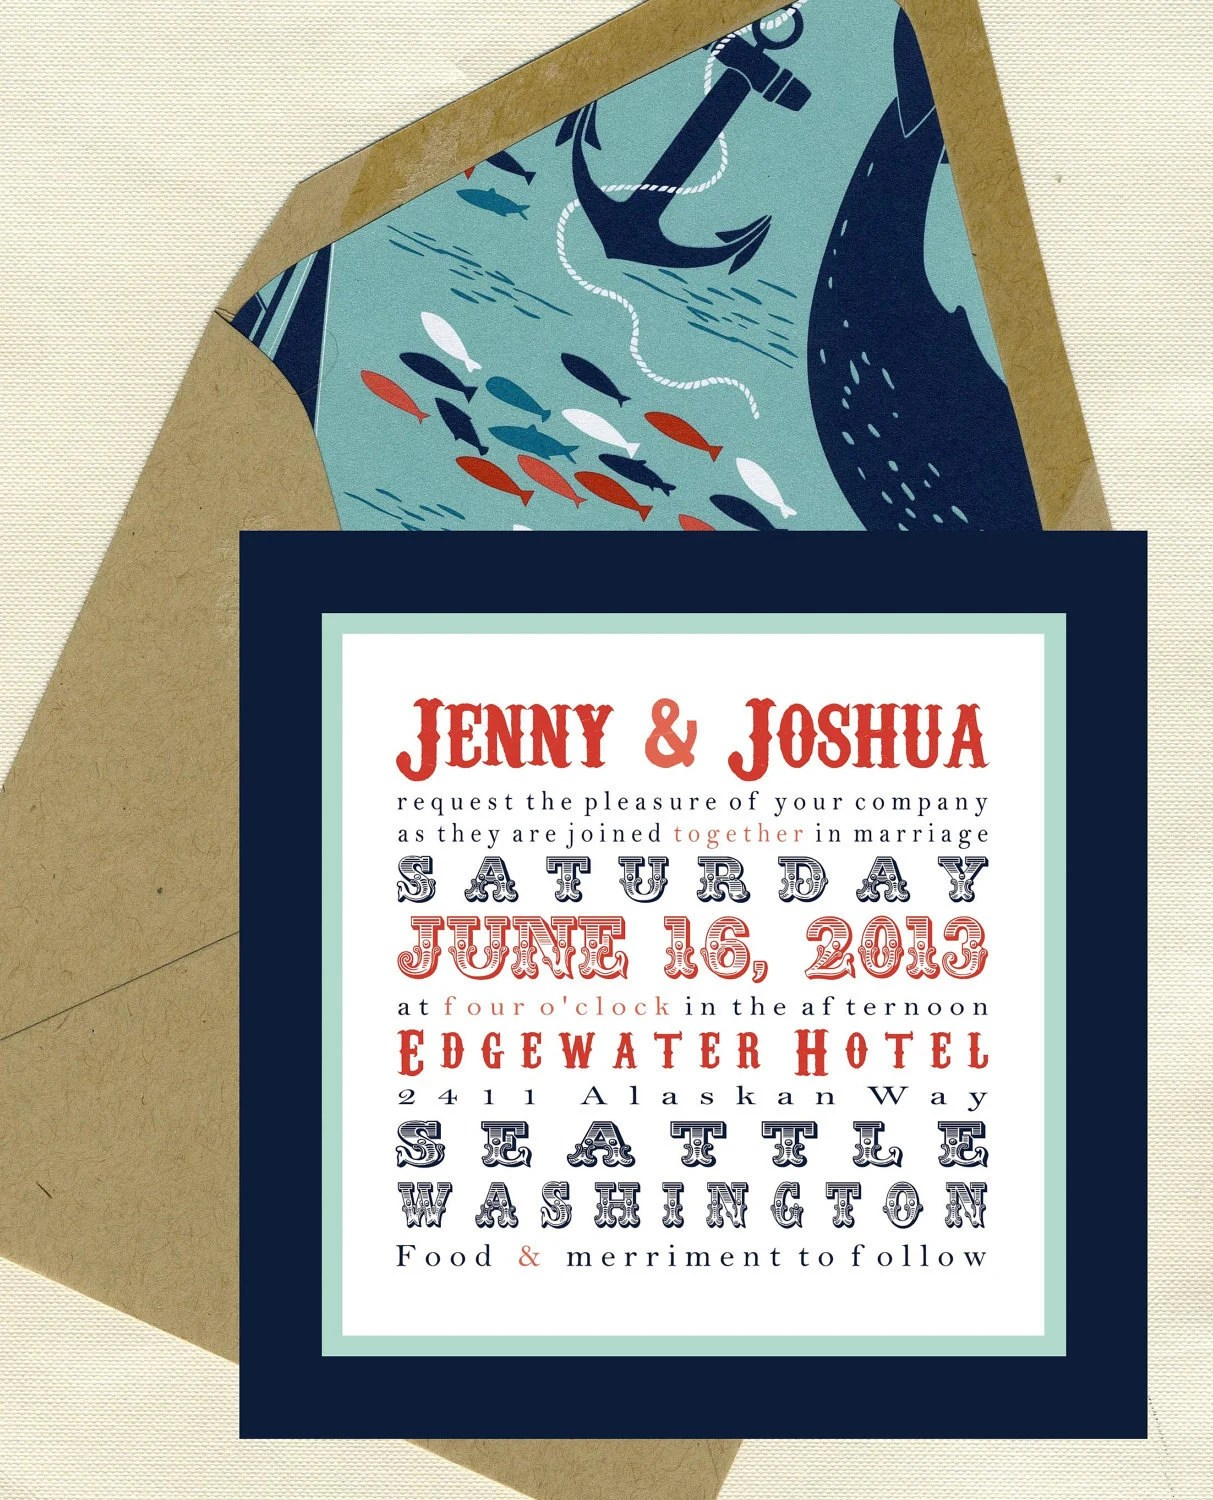 Jenny & Joshua Wedding Invitation Set